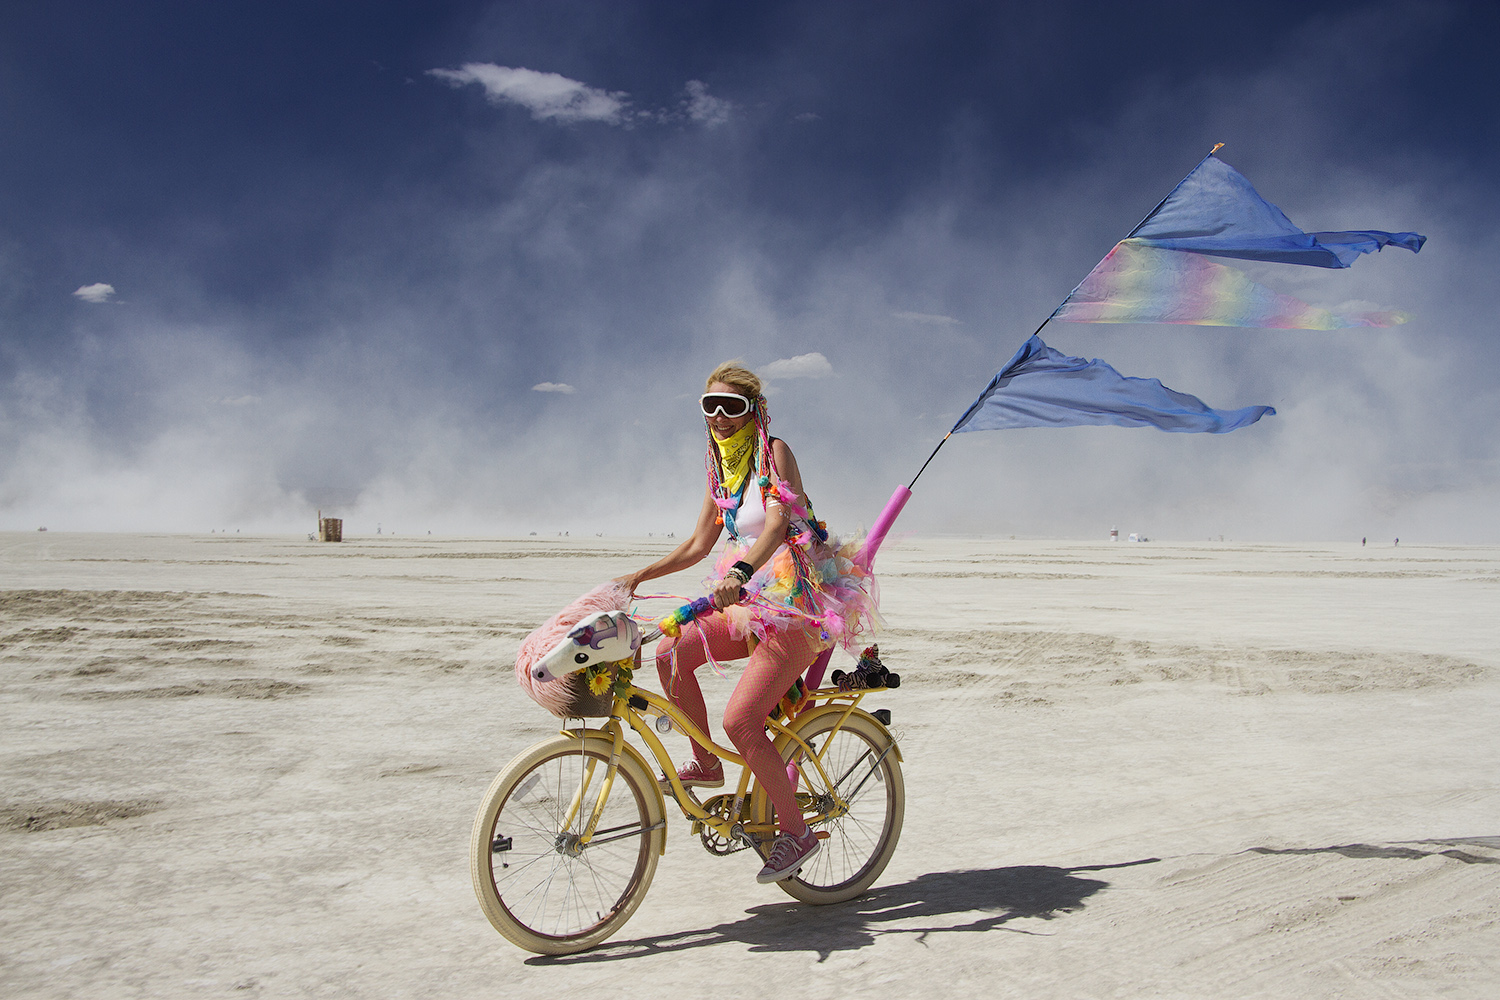 BURNING MAN - Days that change lives